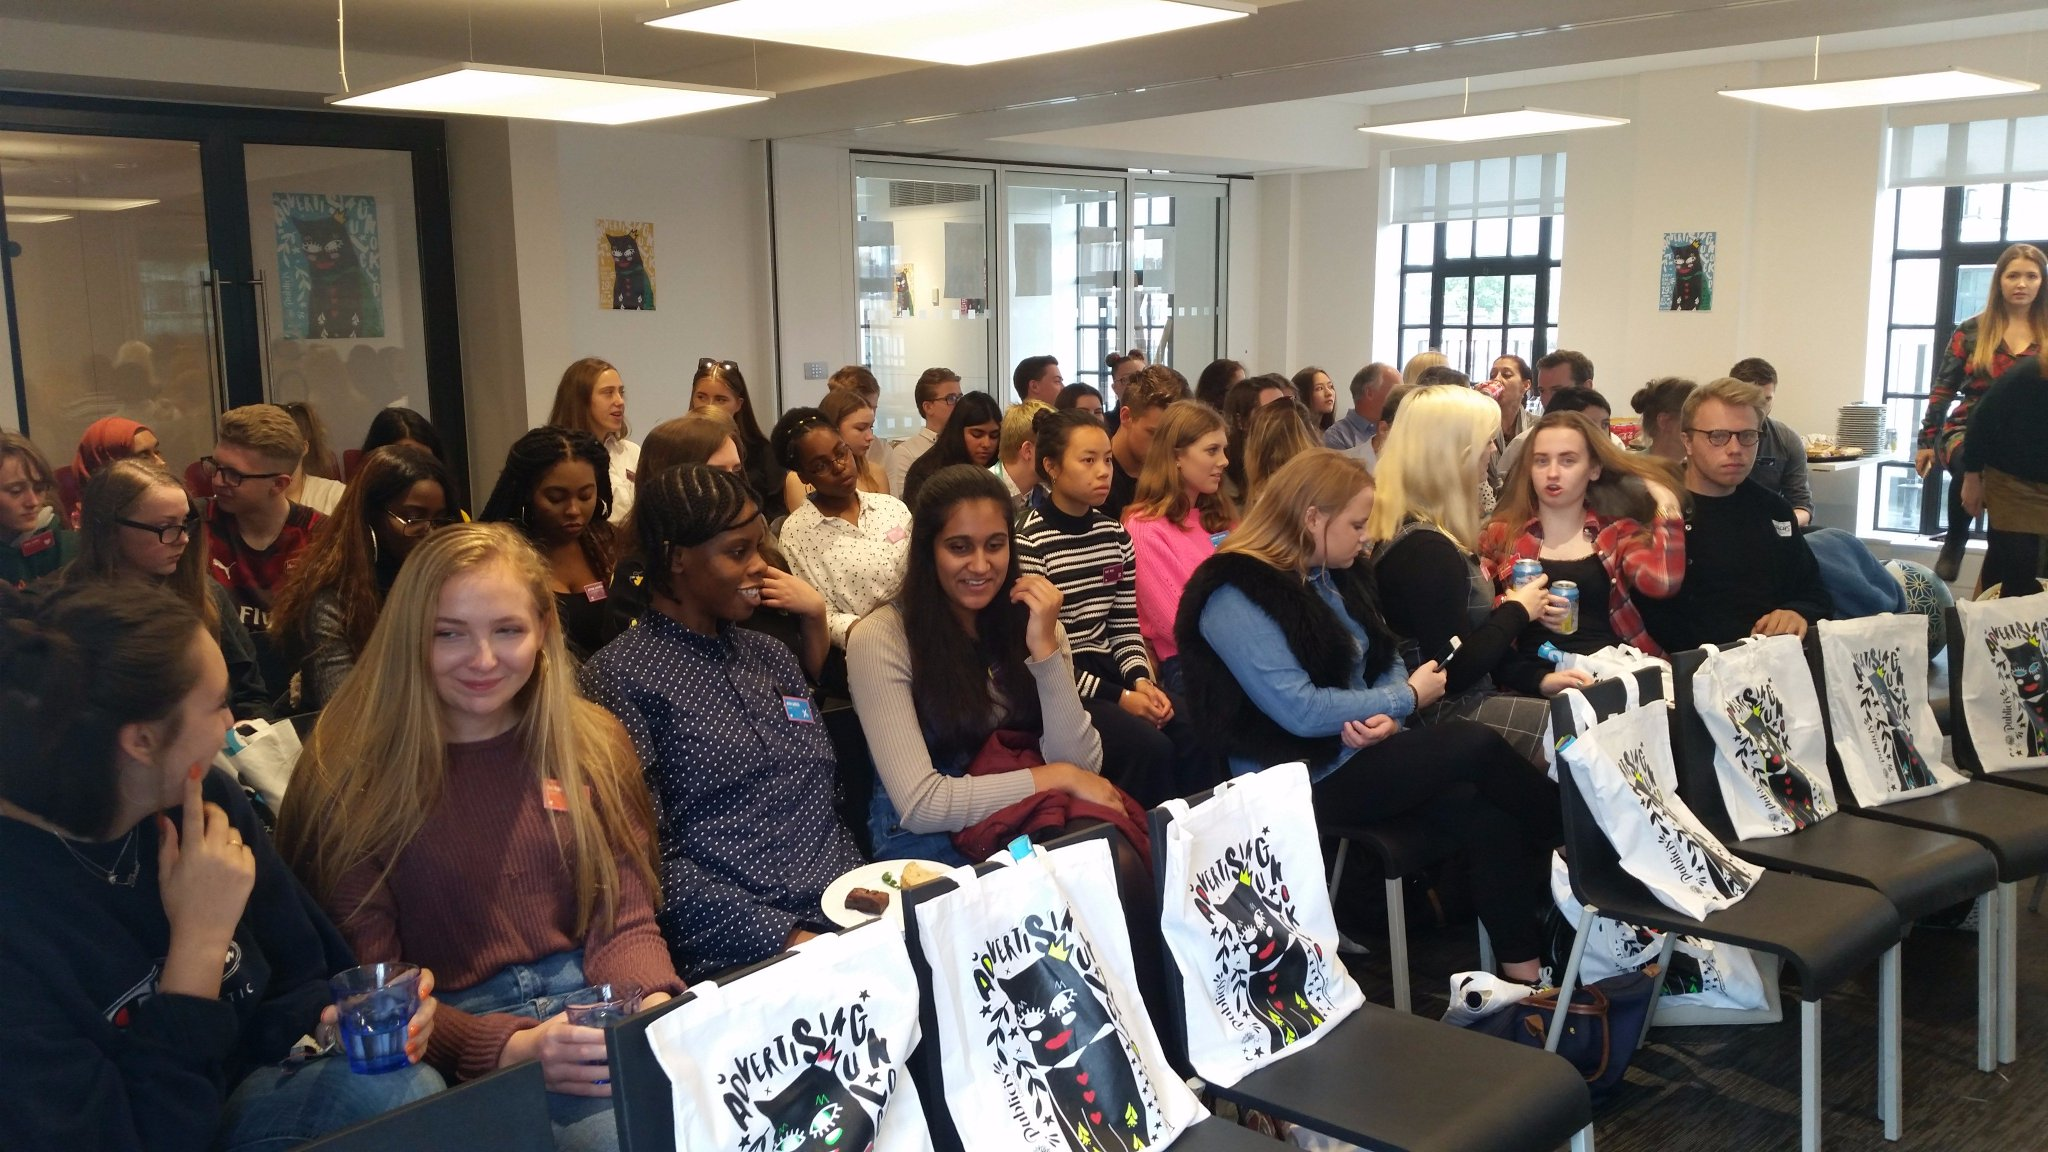 RT @ideasfoundation: A fantastic turnout for #adunlocked at @PublicisLondon from @oaklandscollege! @The_IPA https://t.co/mBRef2OamT